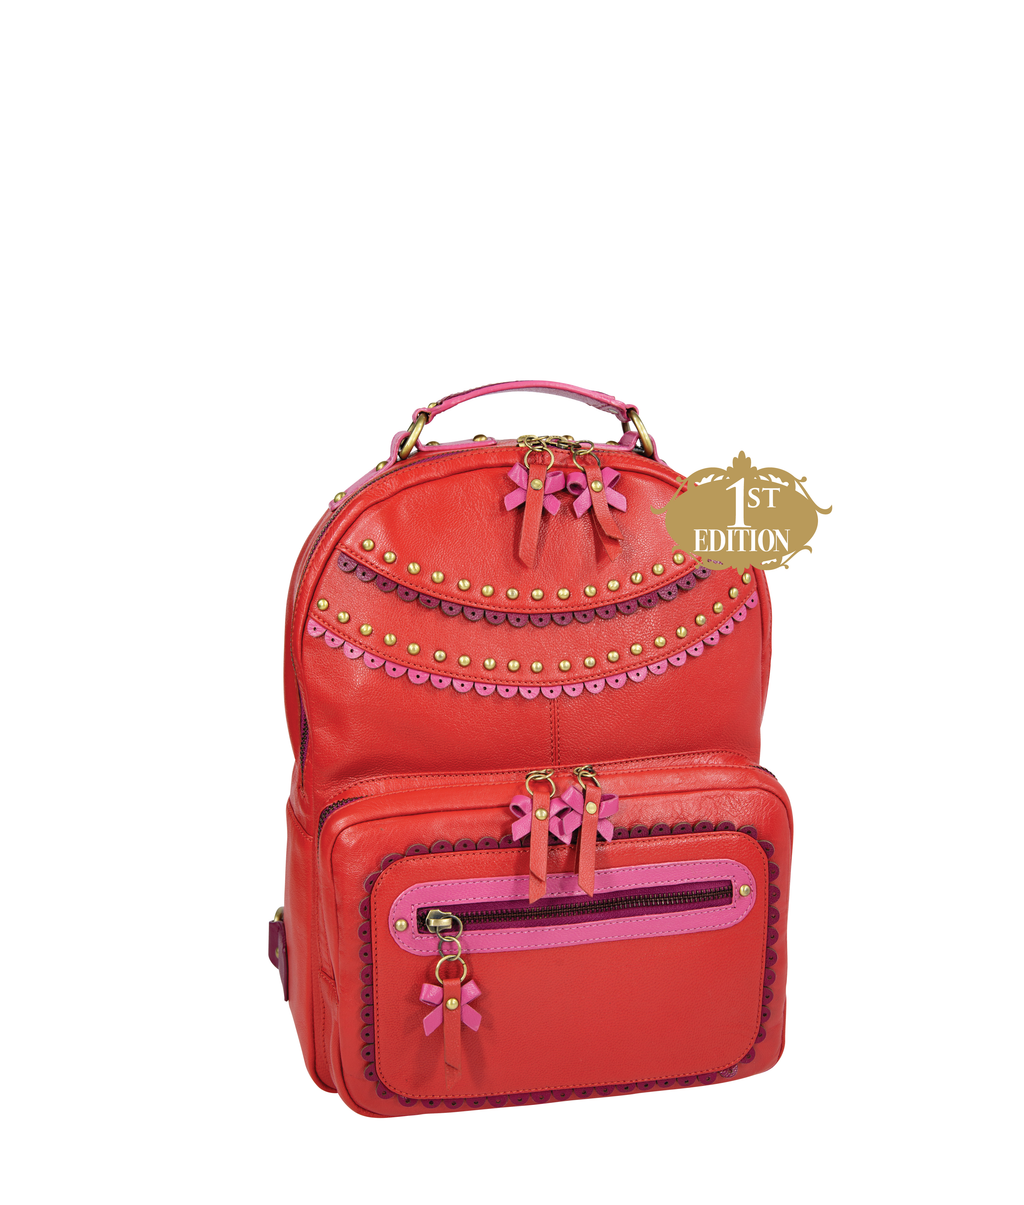 PIPPA Backpack - Fireworks - 1st Edition